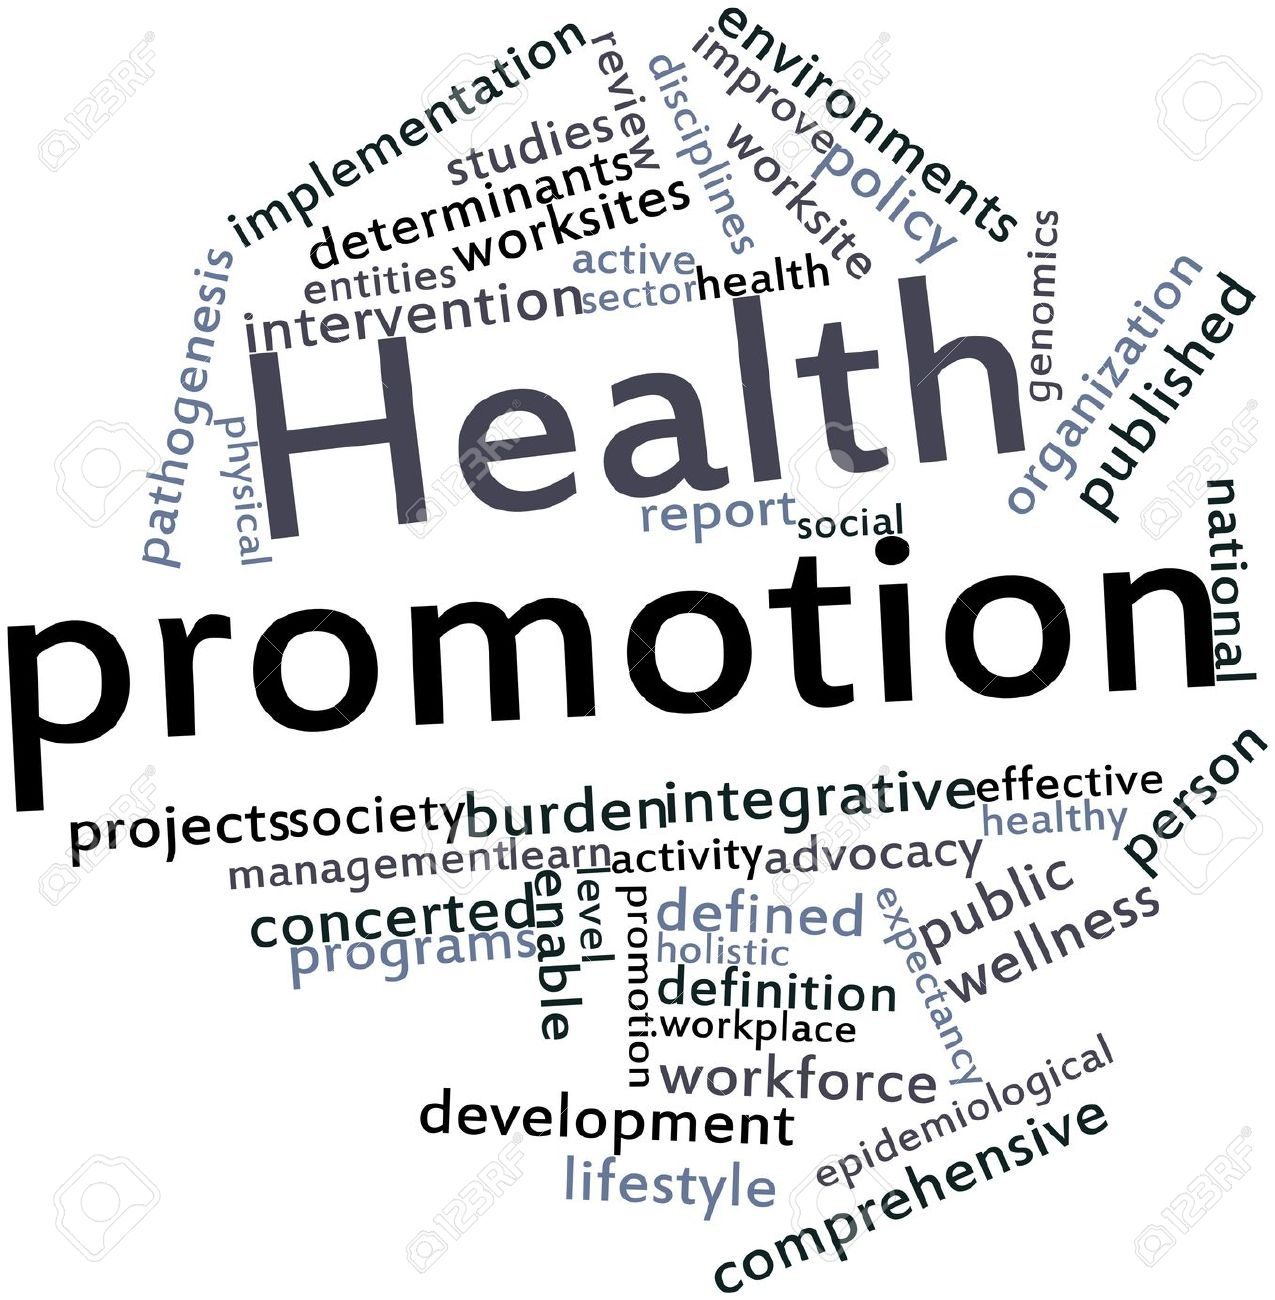 personal health promotion Historically, the prevention of lifestyle diseases has focused on changes in individual behavior and personal choices, and personal responsibilities however, a growing body of research has demonstrated the strong influence of physical and social surroundings on individuals' actions.